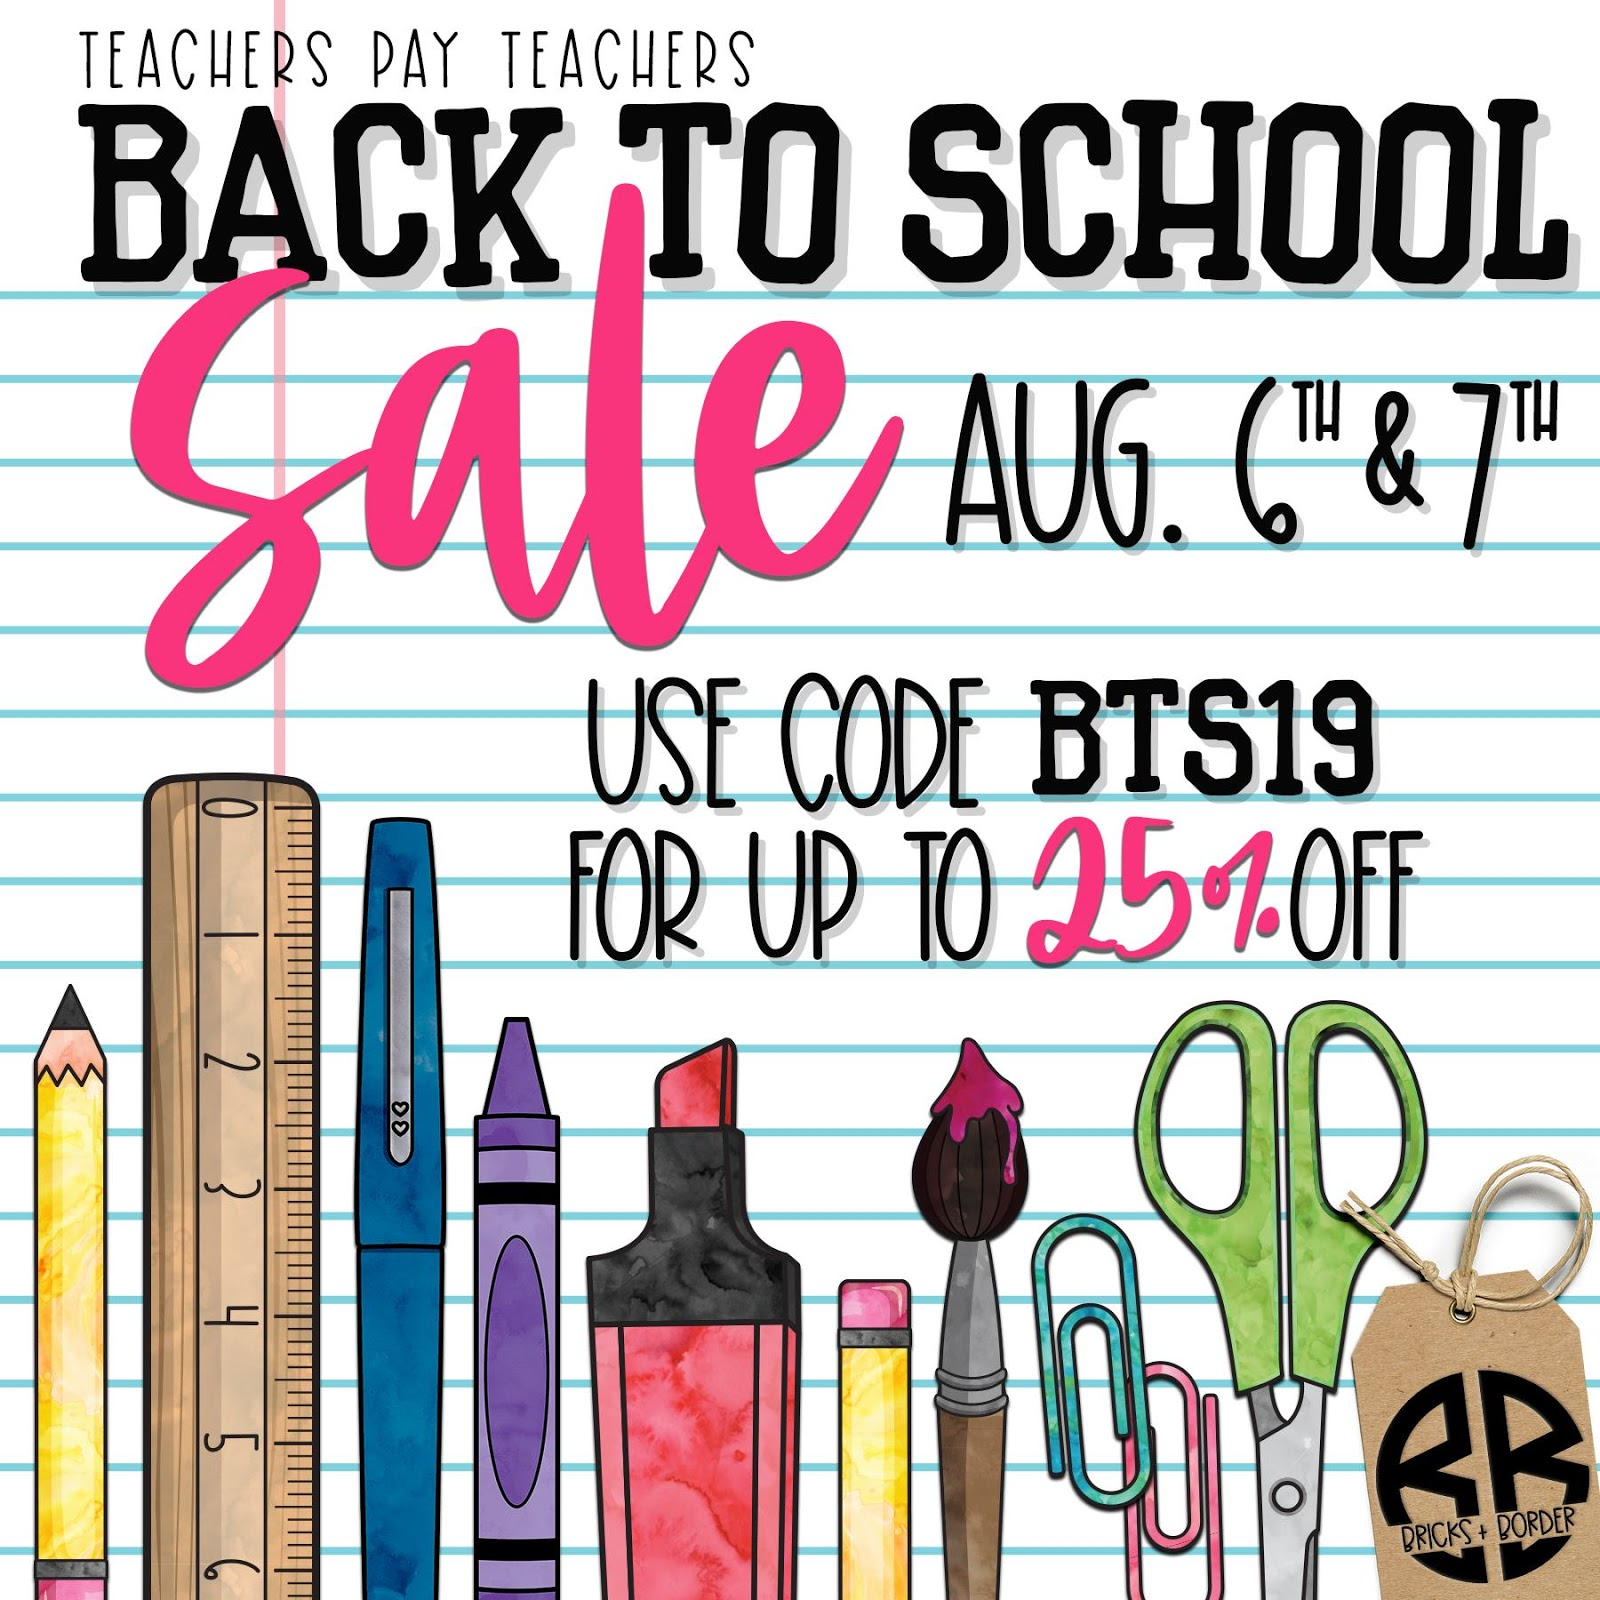 Find great deals for the start of school & the rest of the year at The ESL Nexus during TpT's BTS Sale on August 6 & 7, 2019!